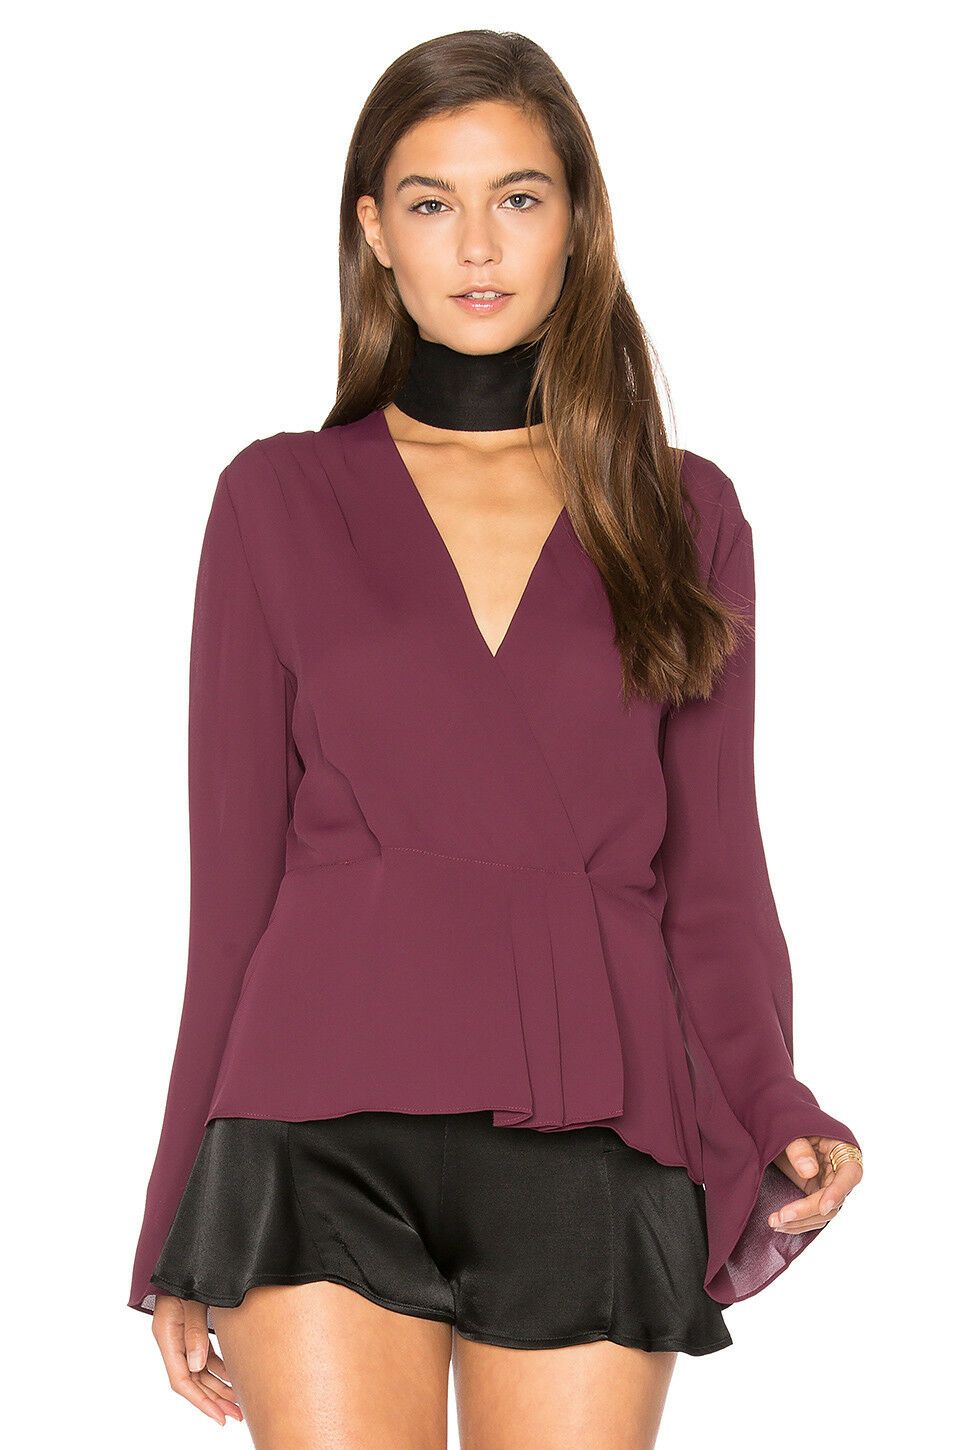 ELIZABETH AND JAMES Layla Shiraz Blouse Top Größe M NWT